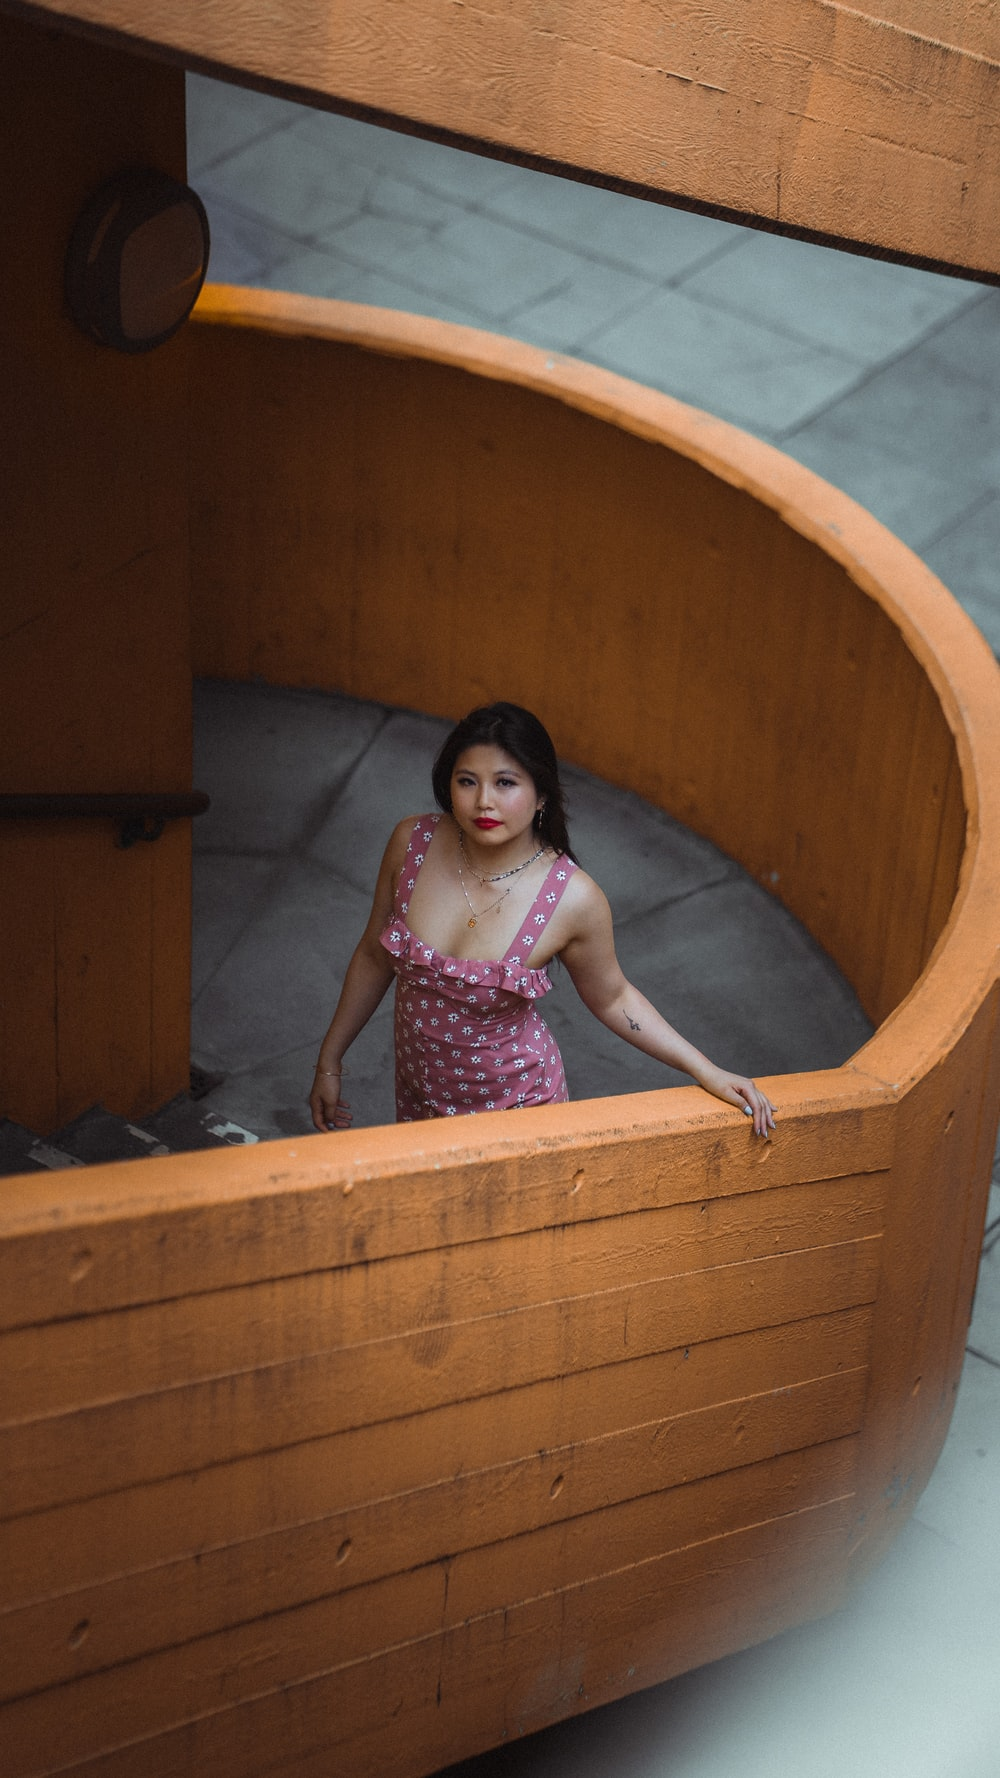 girl in pink and white floral dress in brown wooden bathtub